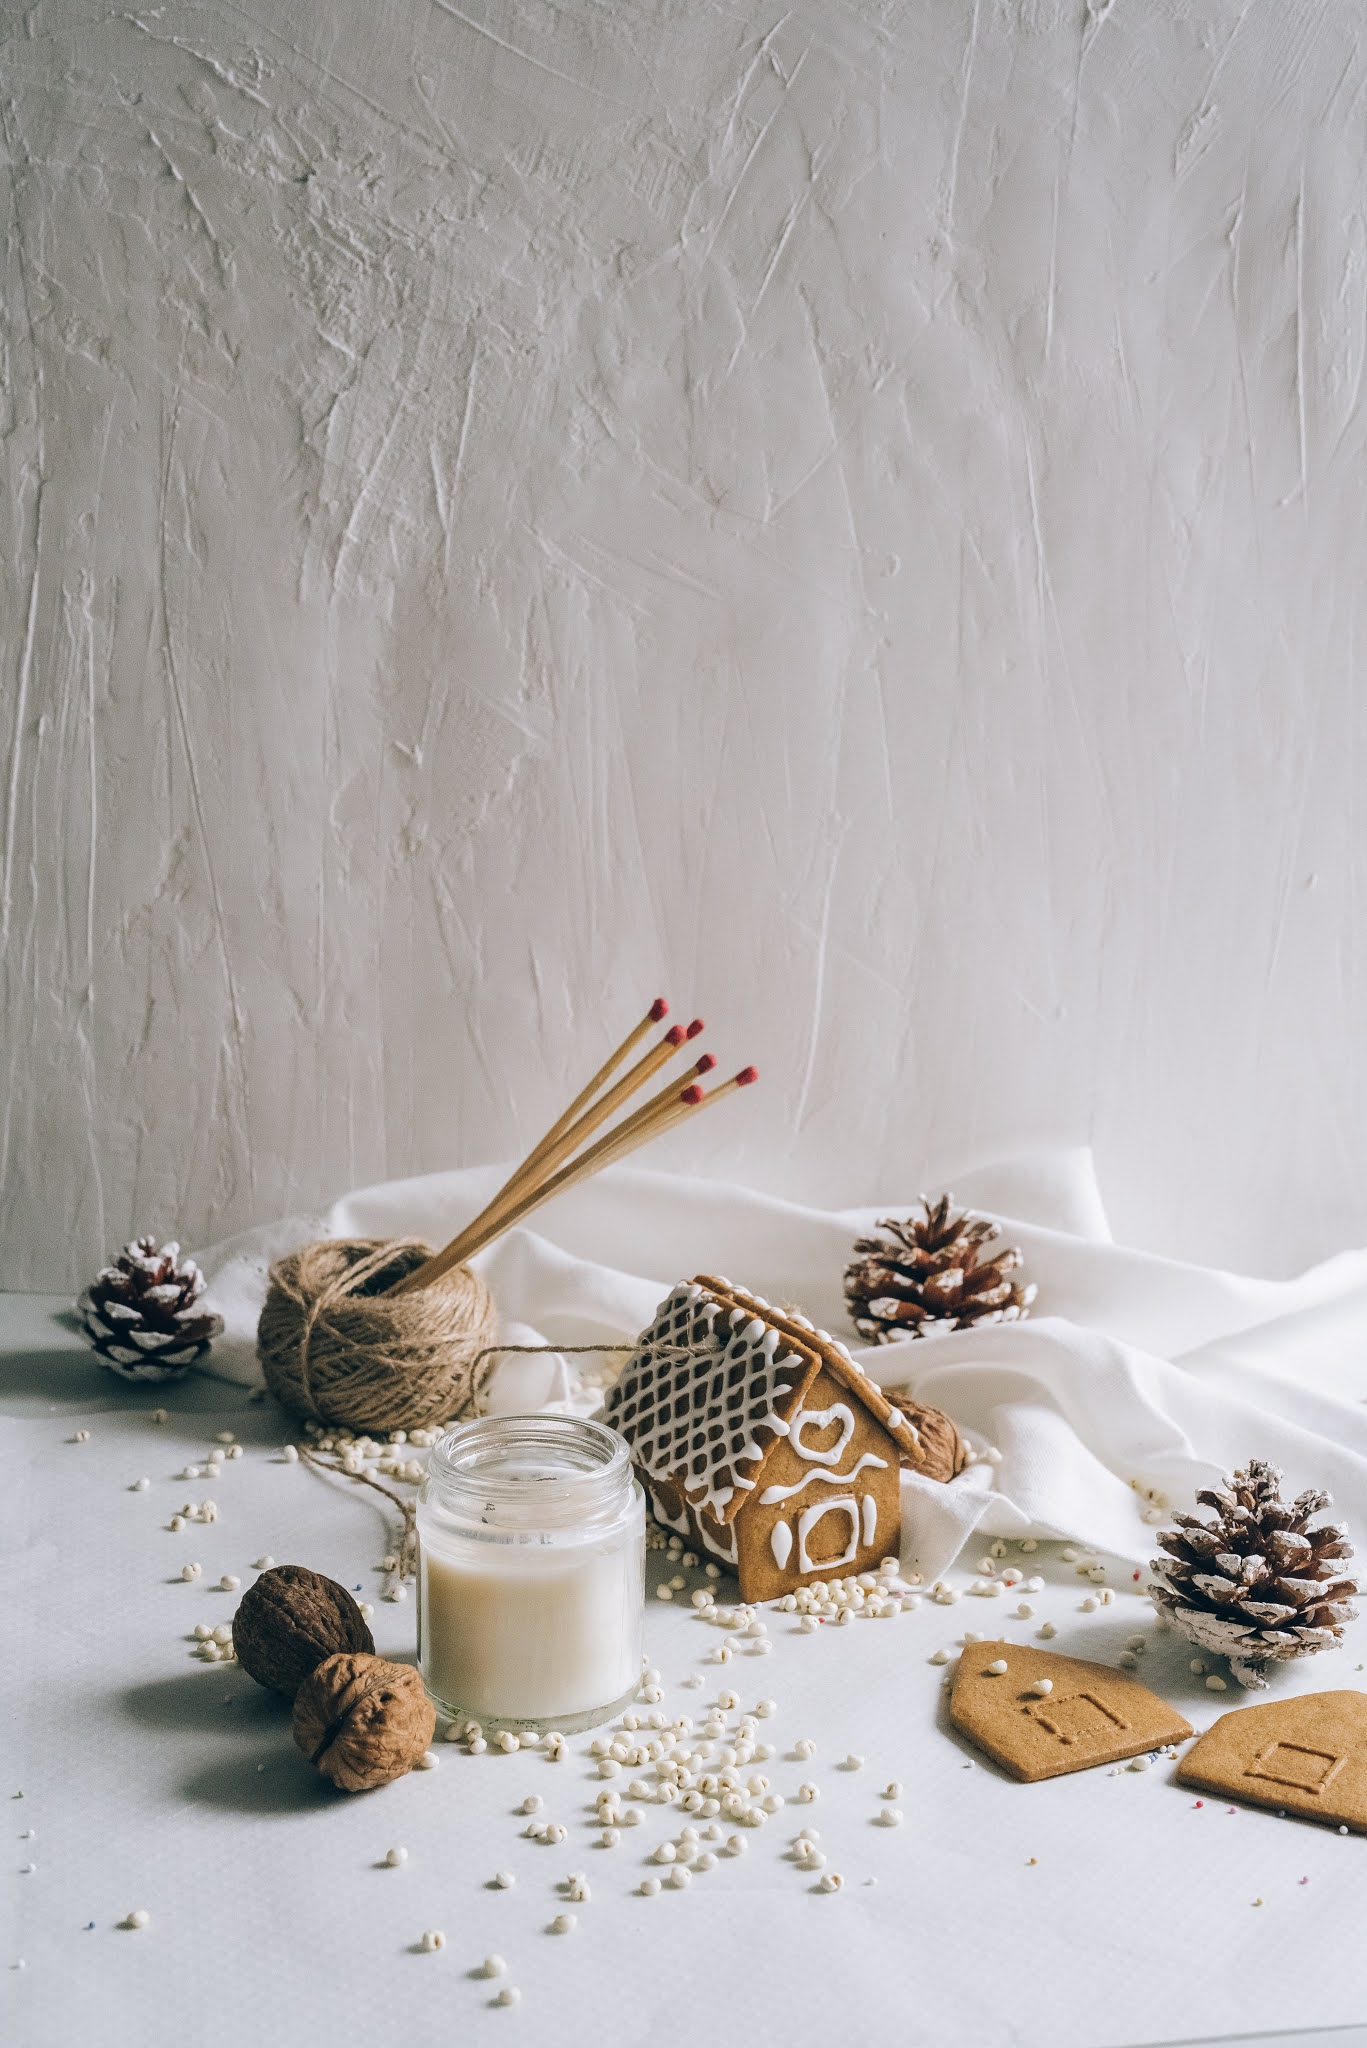 christmas decorations and gingerbread house on white background